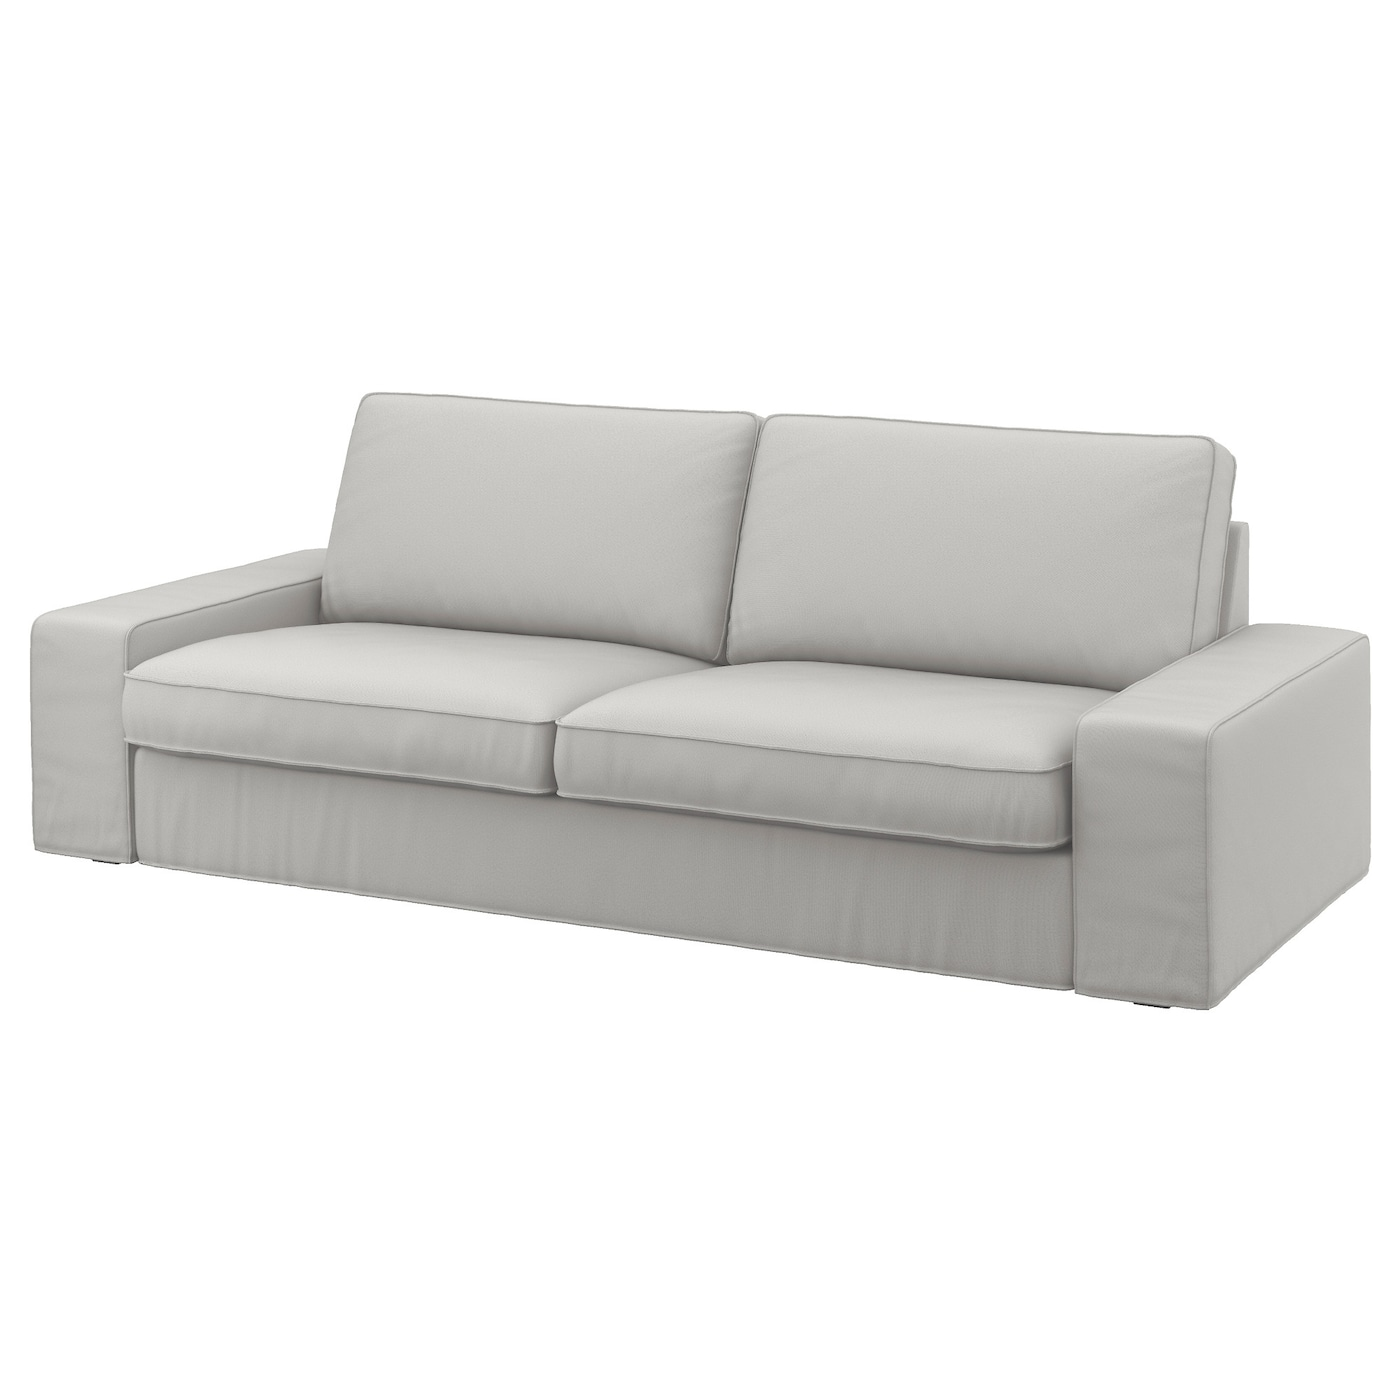 Beau IKEA KIVIK Three Seat Sofa 10 Year Guarantee. Read About The Terms In The